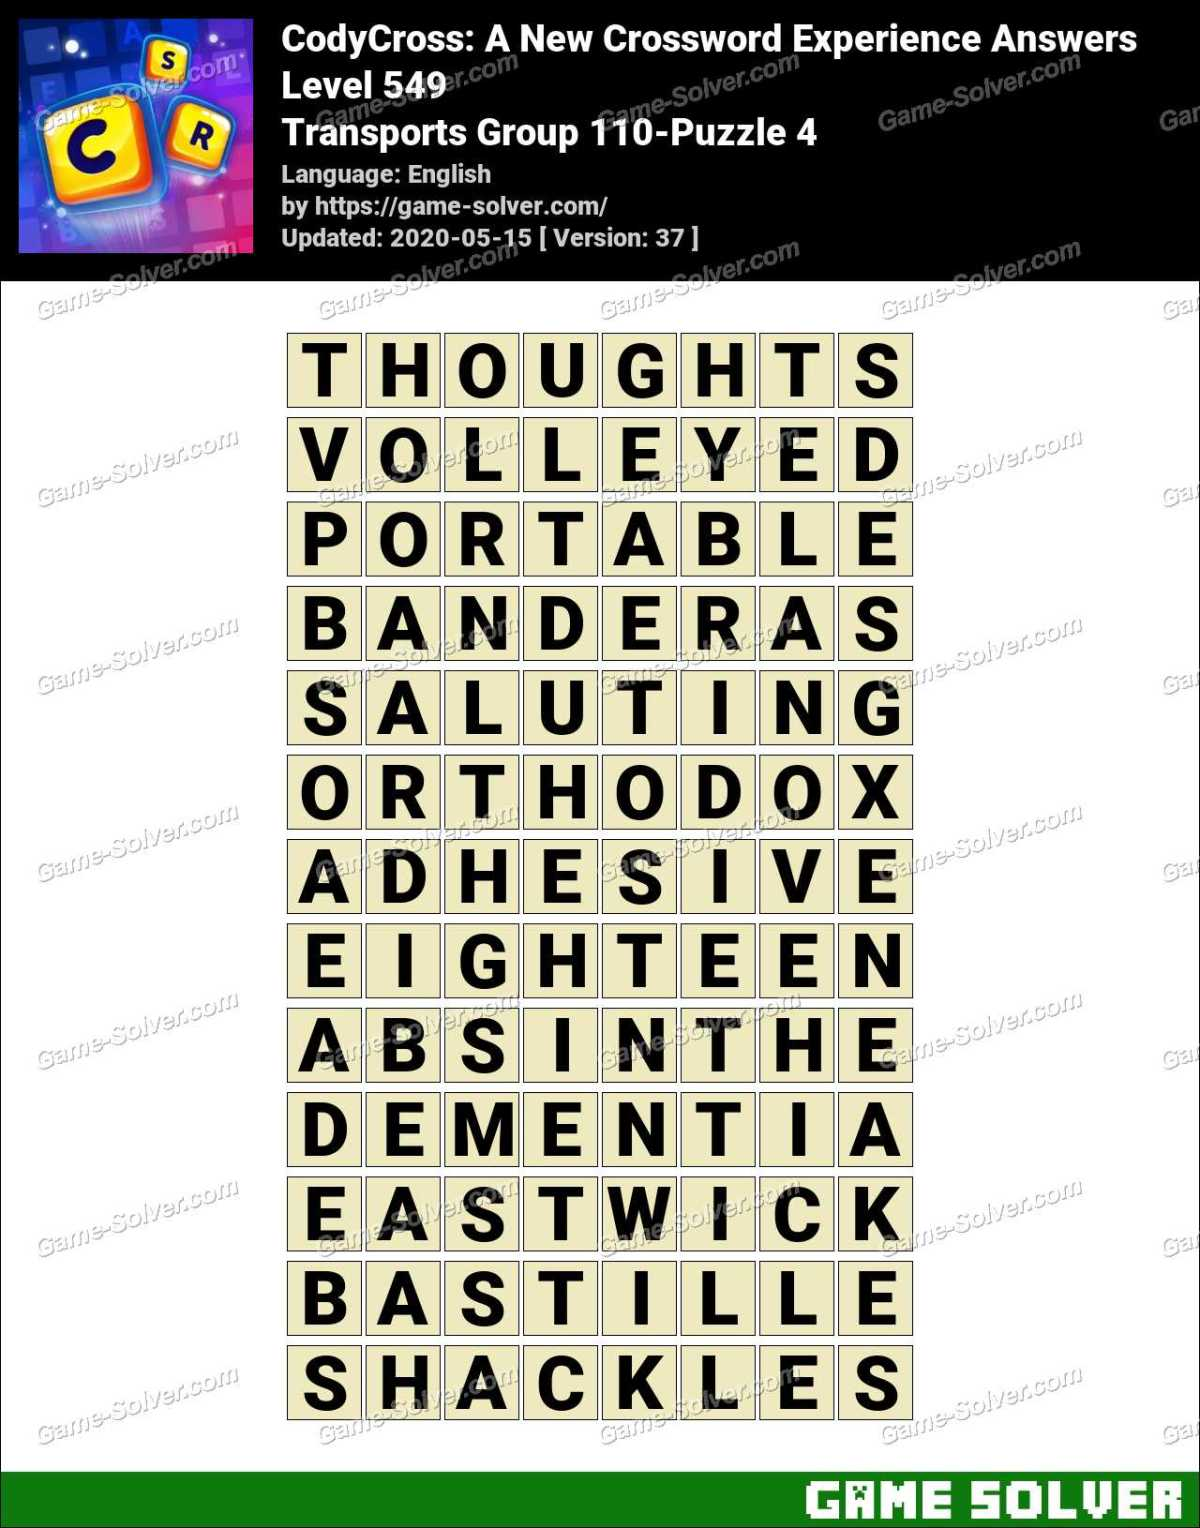 CodyCross Transports Group 110-Puzzle 4 Answers